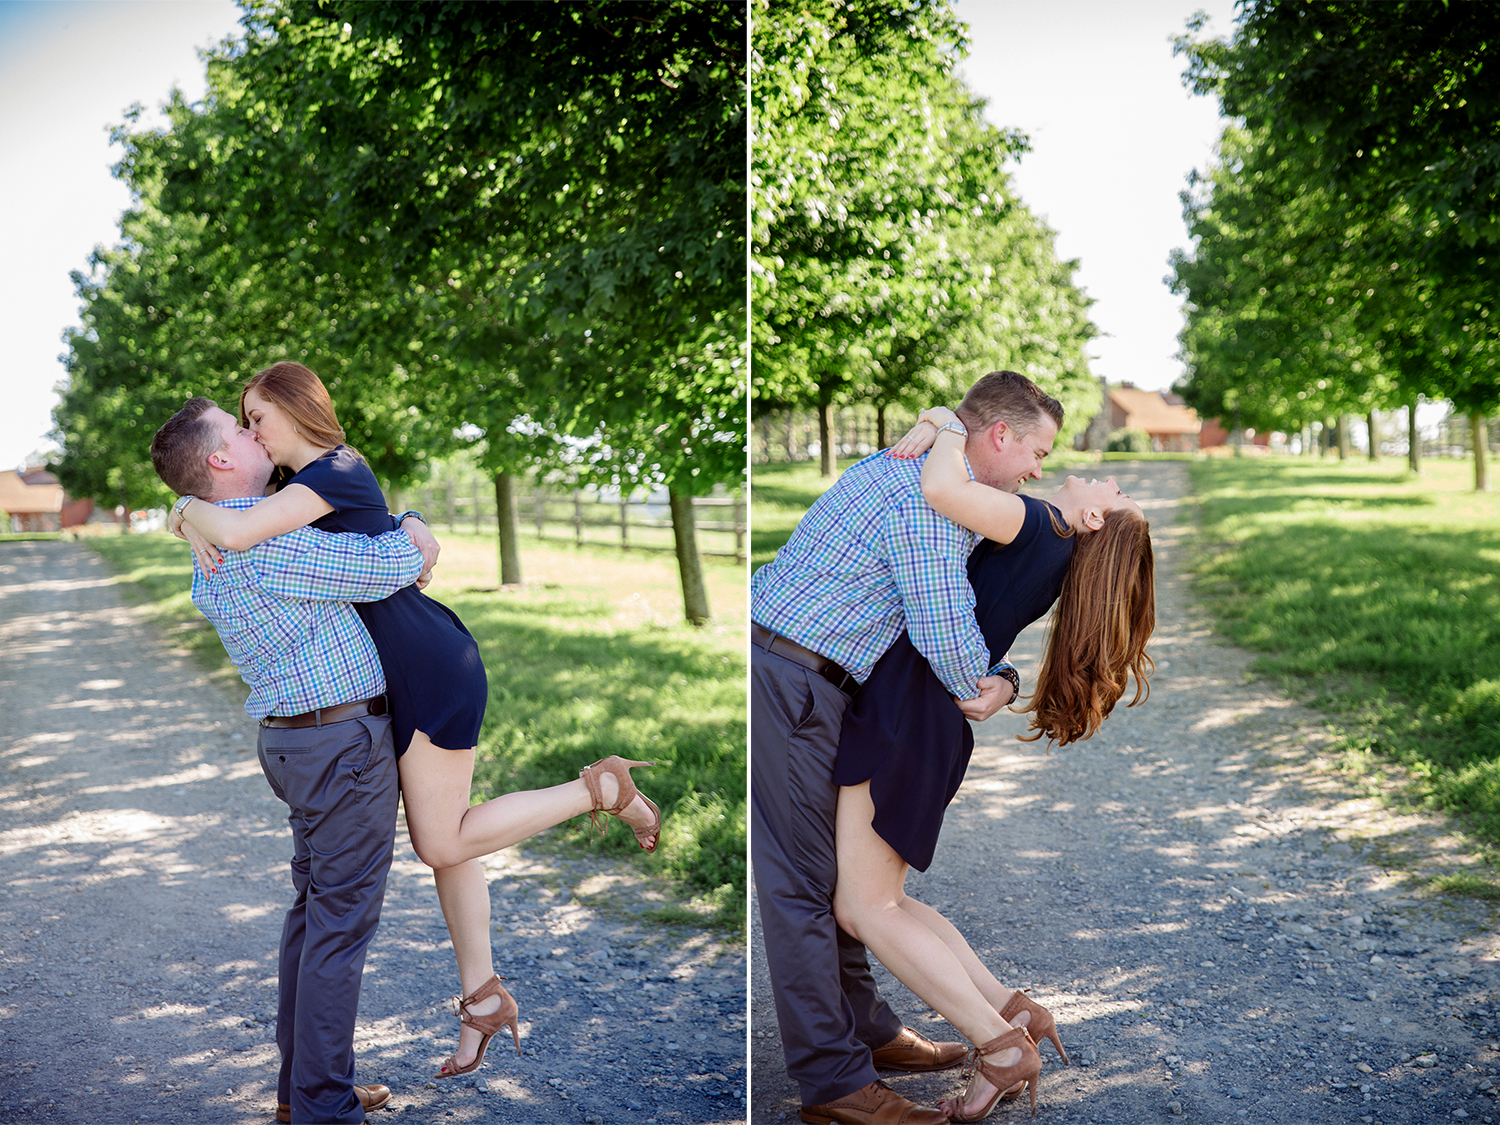 Lauren+AJ | Warwick Winery Engagement Session-Candid Photography- Olivia Christina Photography